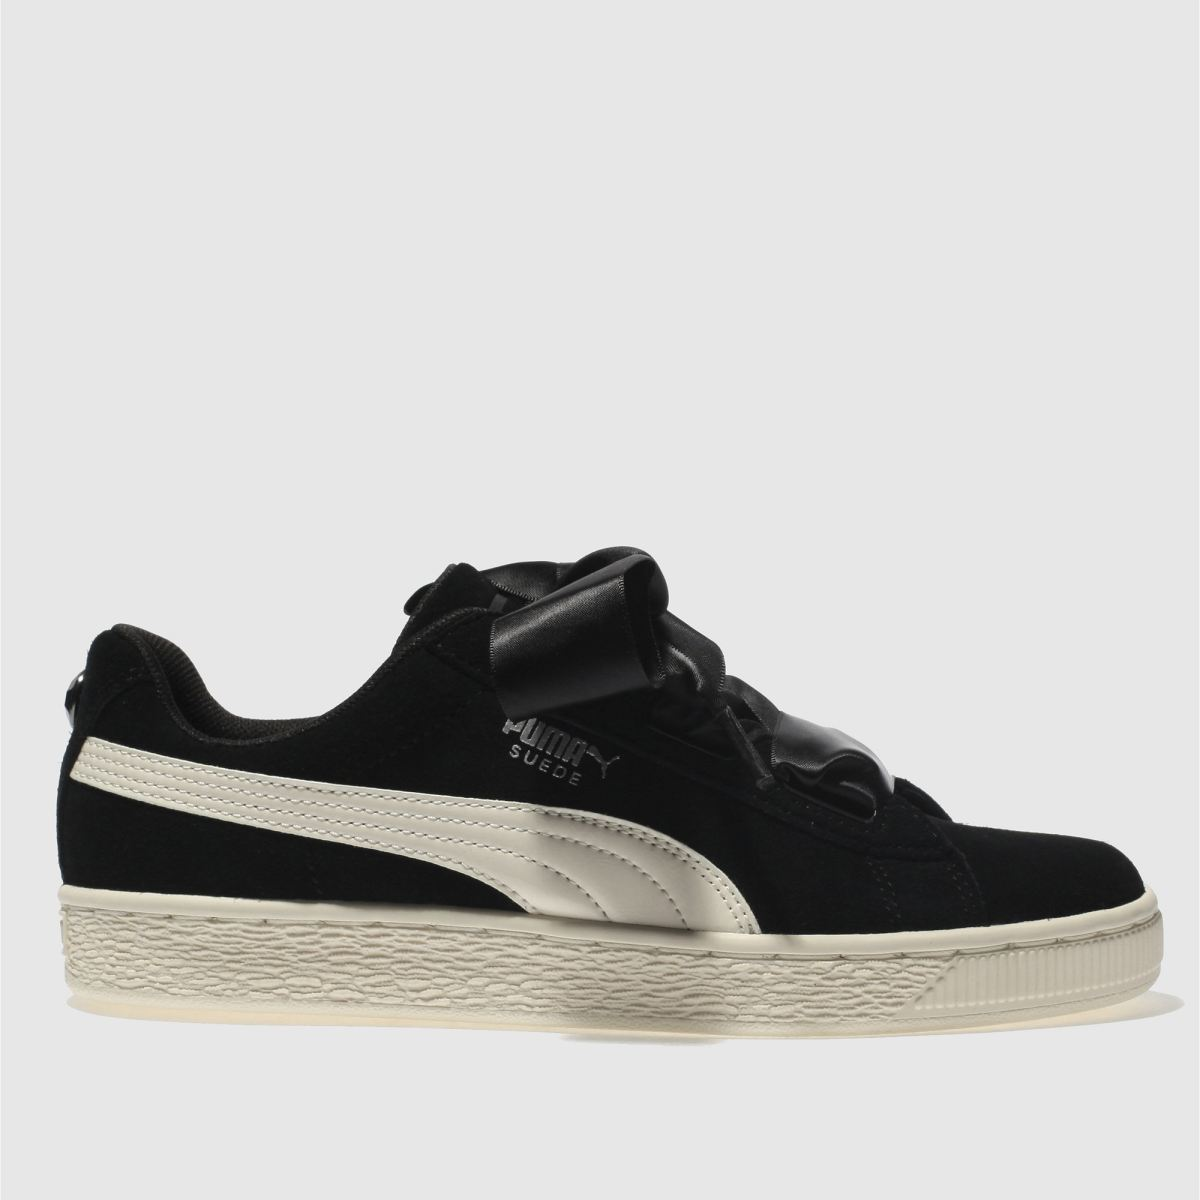 Puma Black & White Suede Heart Jewel Girls Youth Trainers